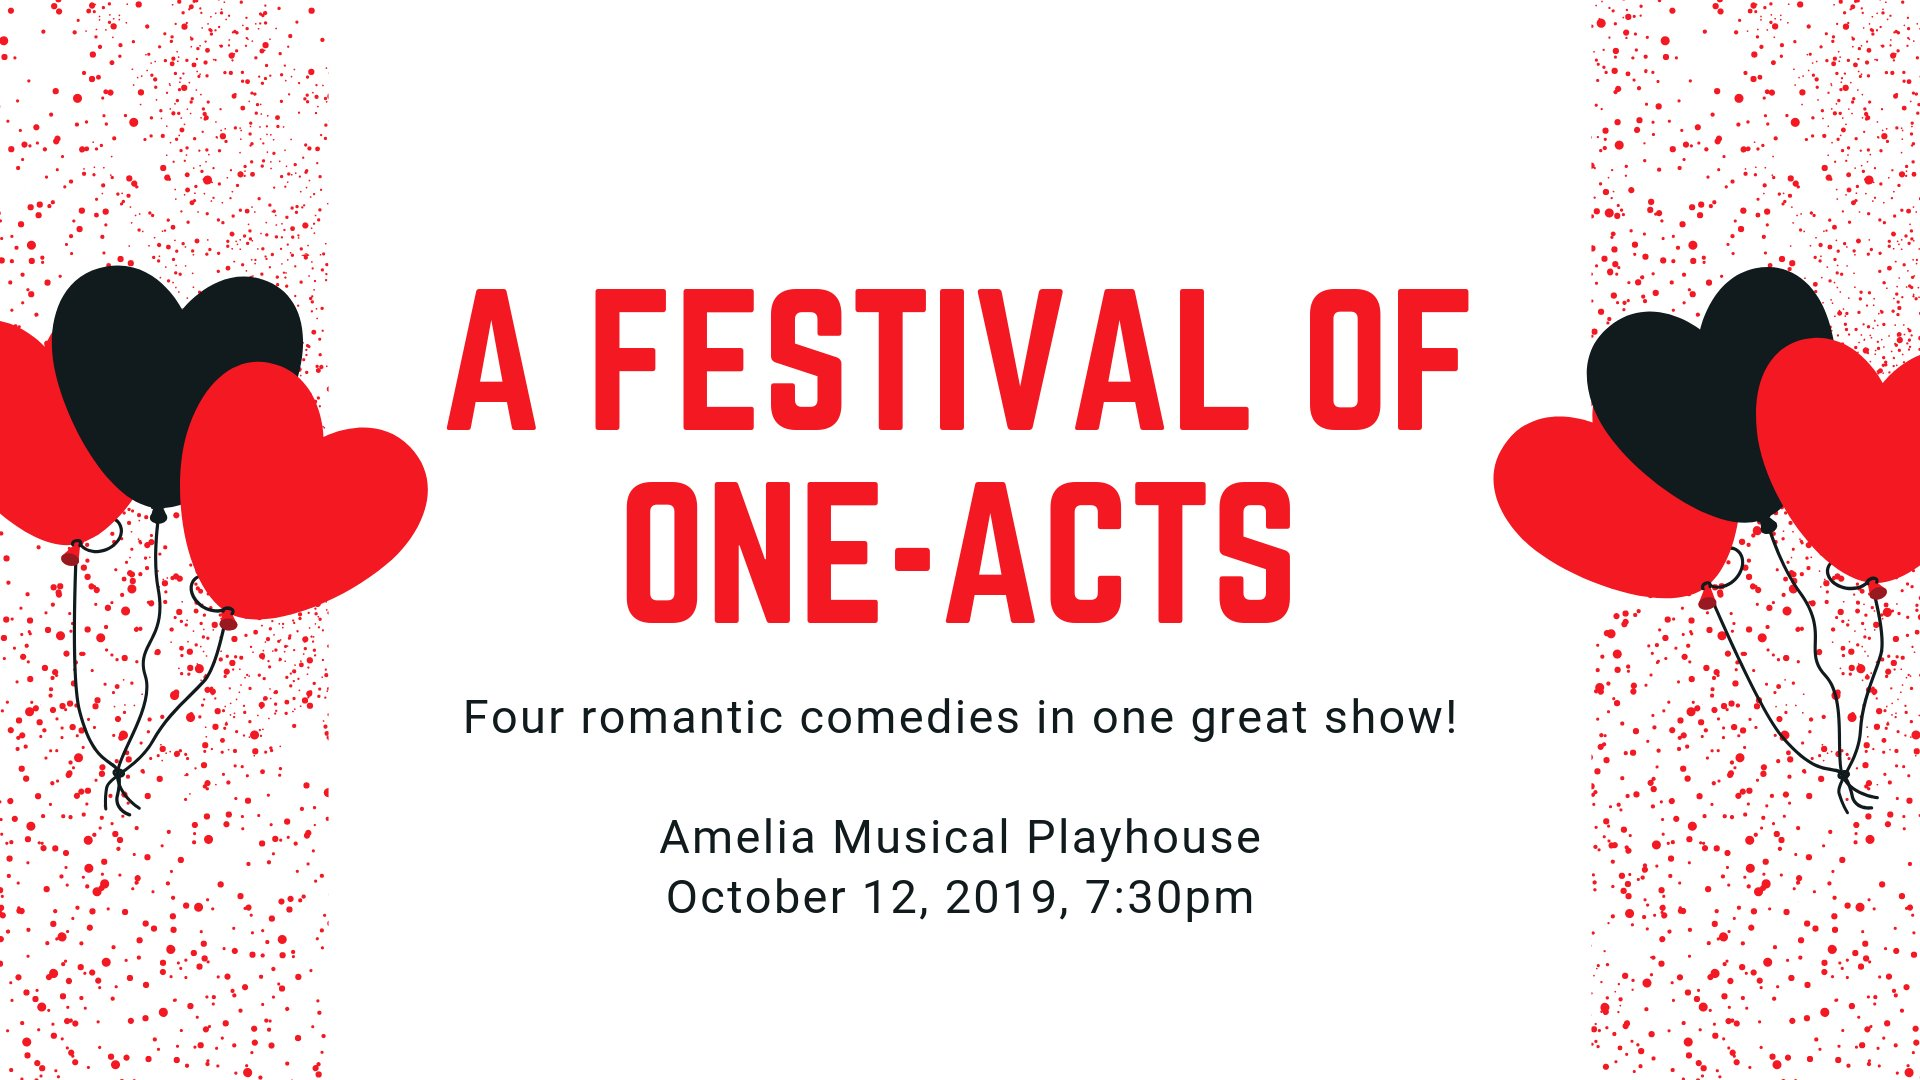 A Festival of One Acts